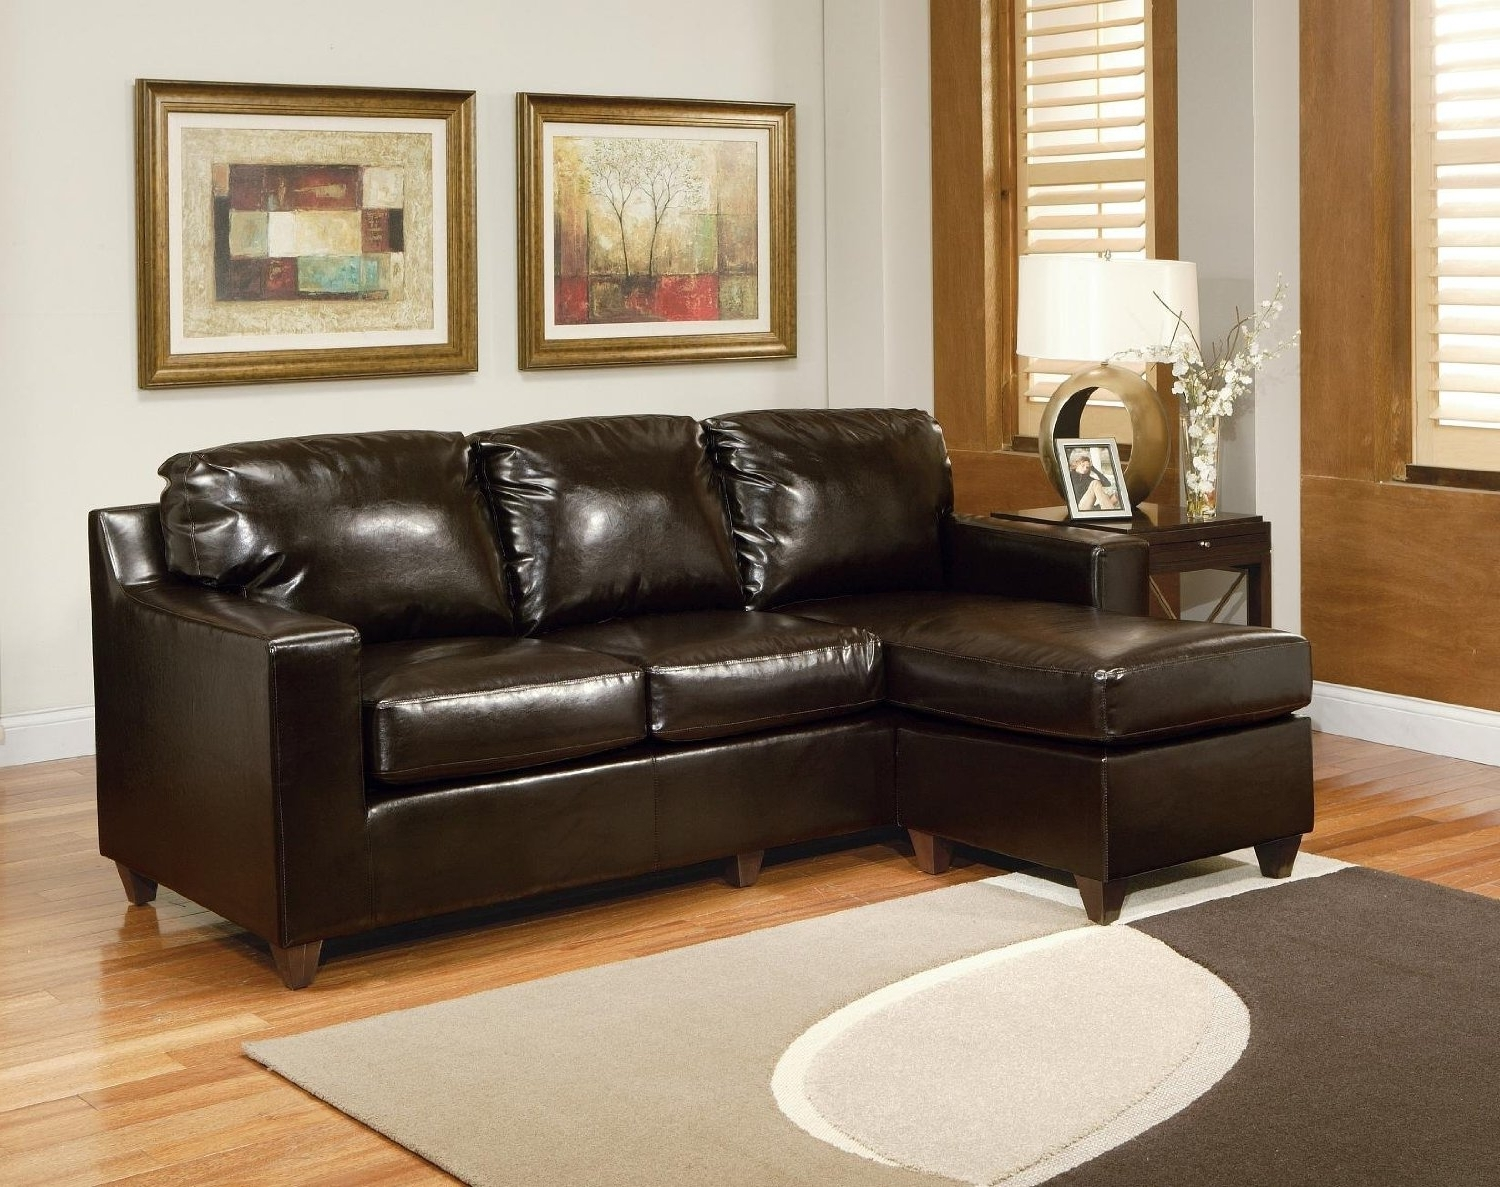 Sofa : Small Scale Sofa With Chaise Loveseat Loveseats For Small Intended For Most Popular Narrow Spaces Sectional Sofas (View 14 of 20)